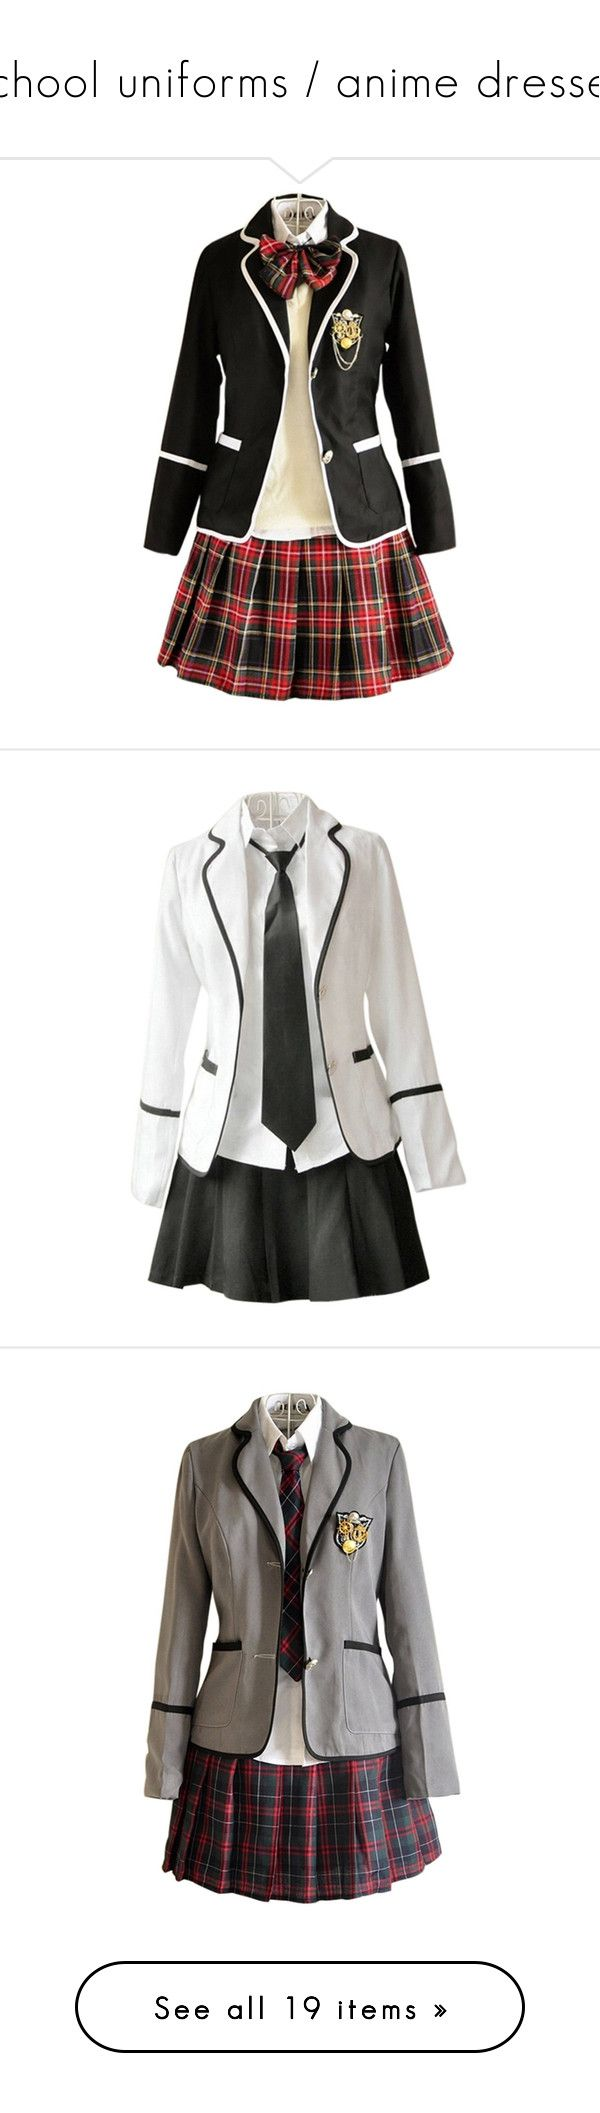 """school uniforms / anime dresses"" by demigod-wizard-hacked-elf ❤ liked on Polyvore featuring dresses, uniforms, cosplay, other, outfits, costumes, tops, costume, full outfits and uniform"